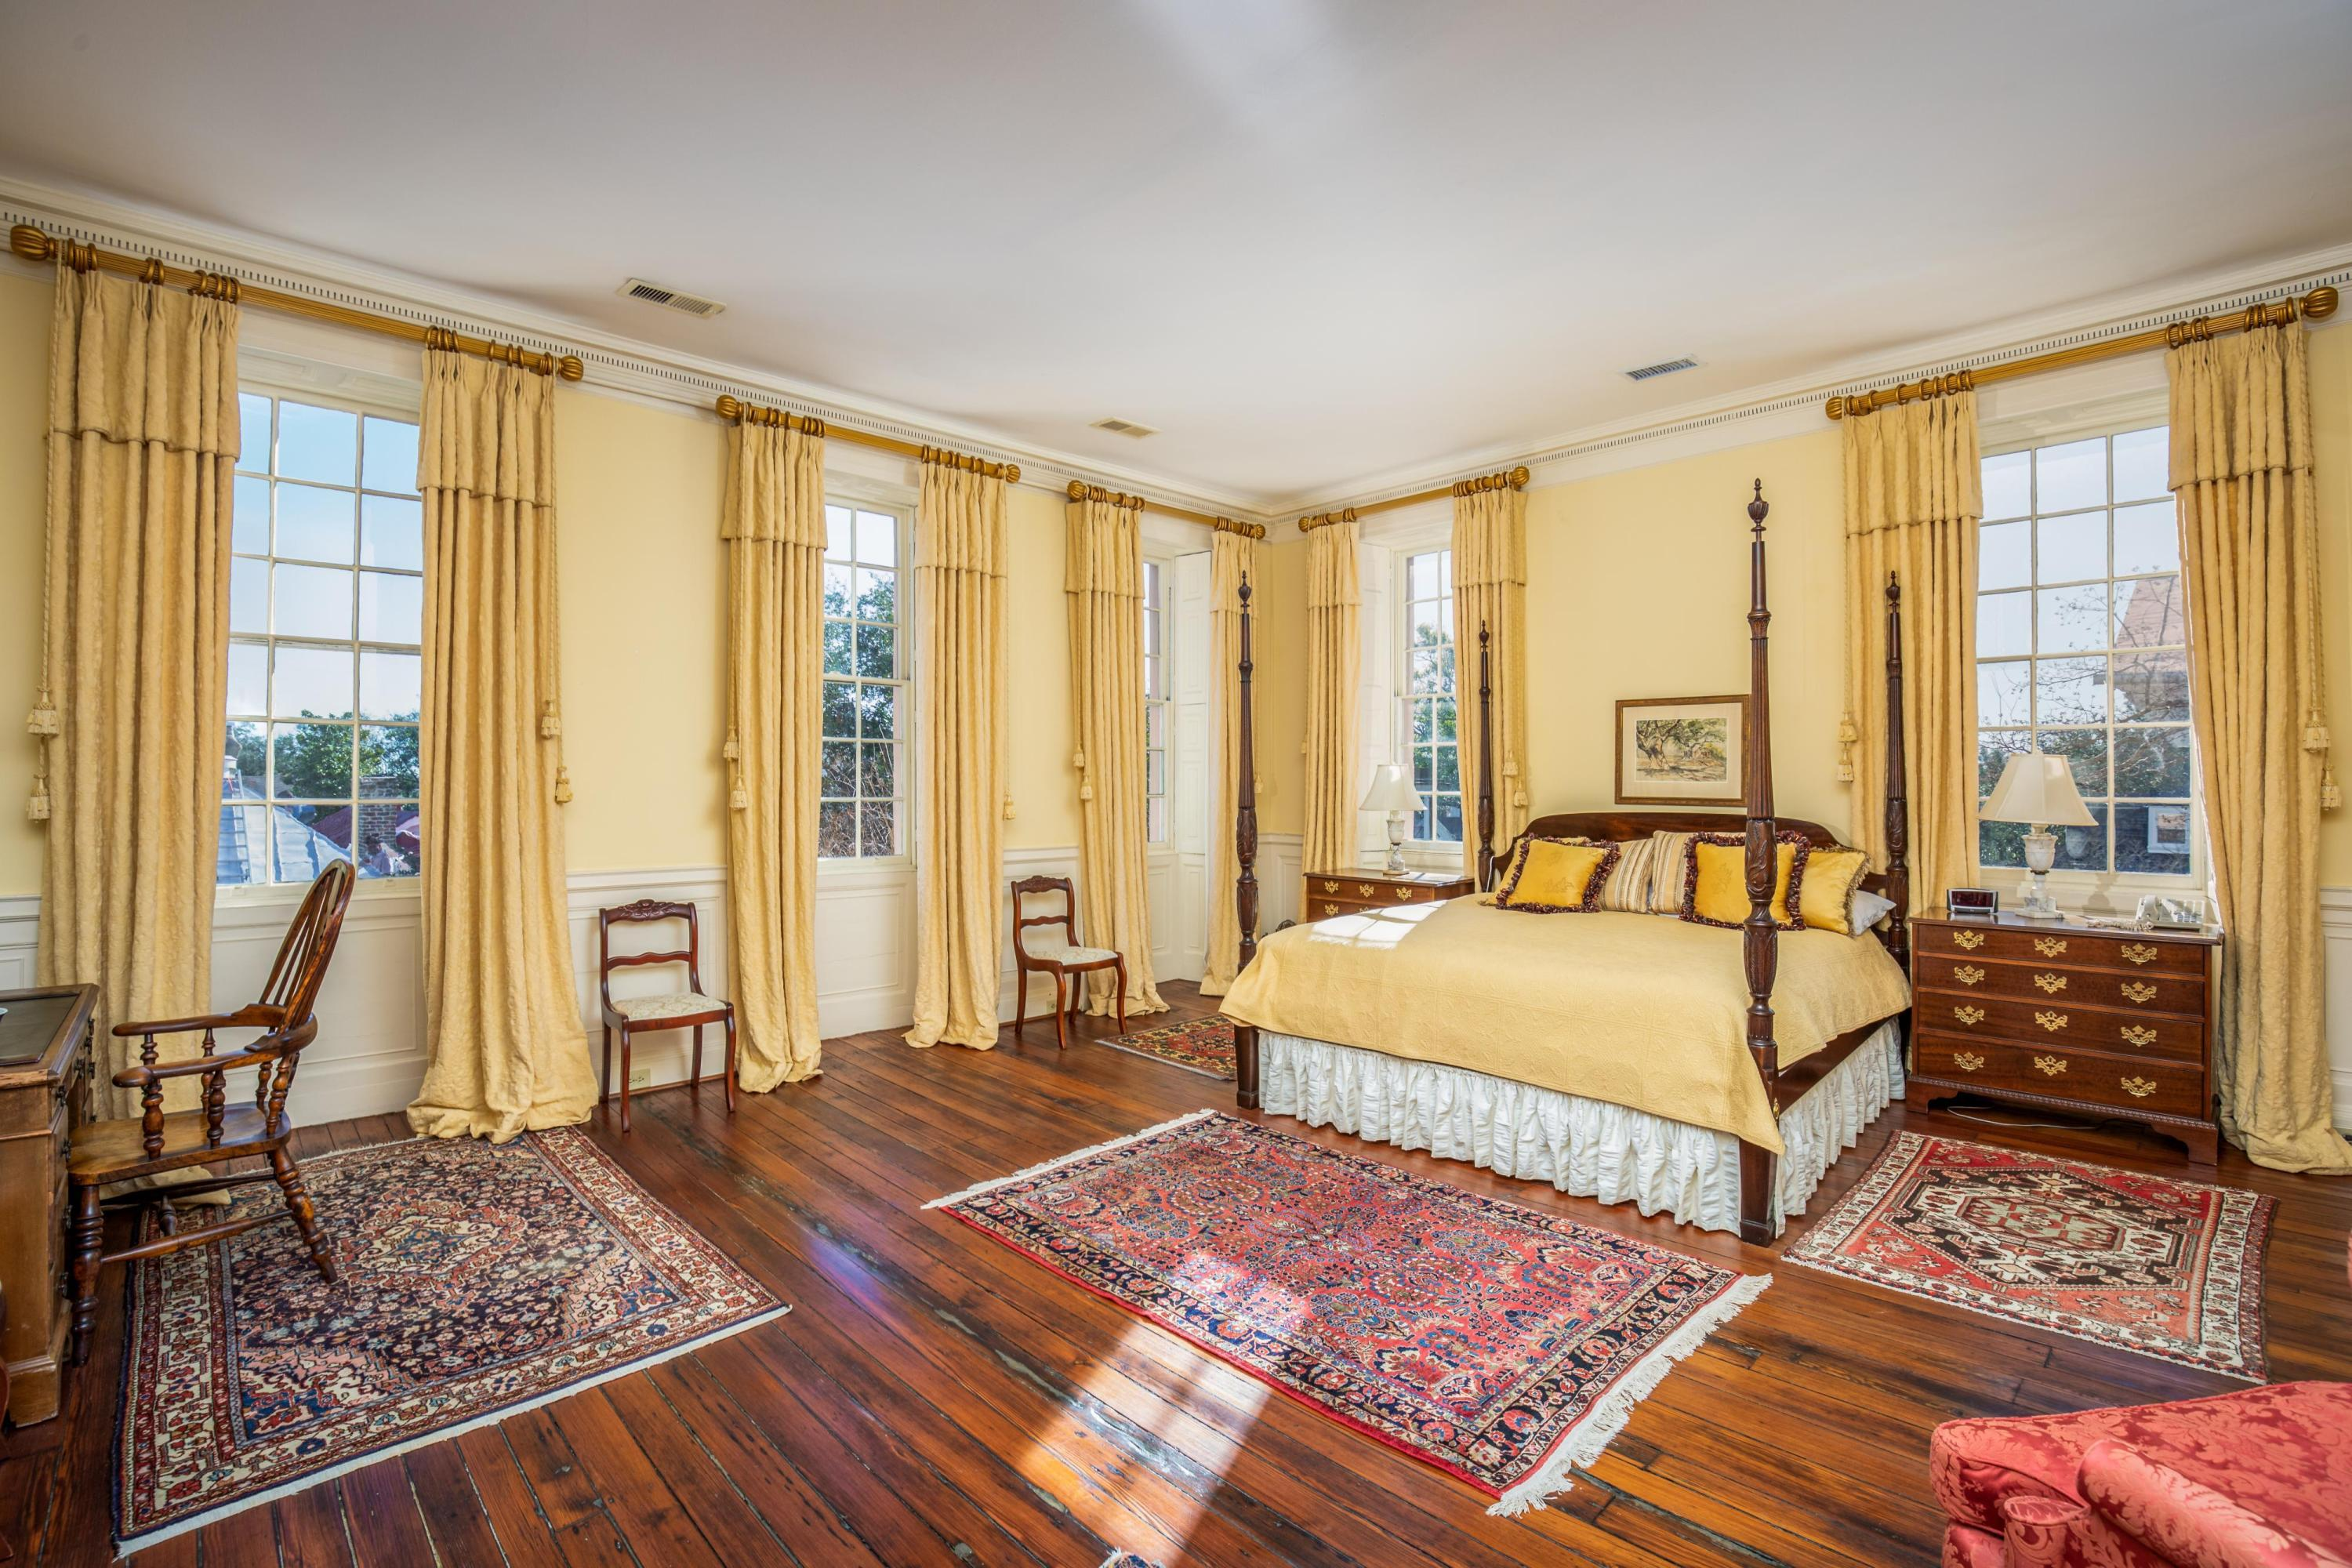 South of Broad Homes For Sale - 69 Church, Charleston, SC - 76